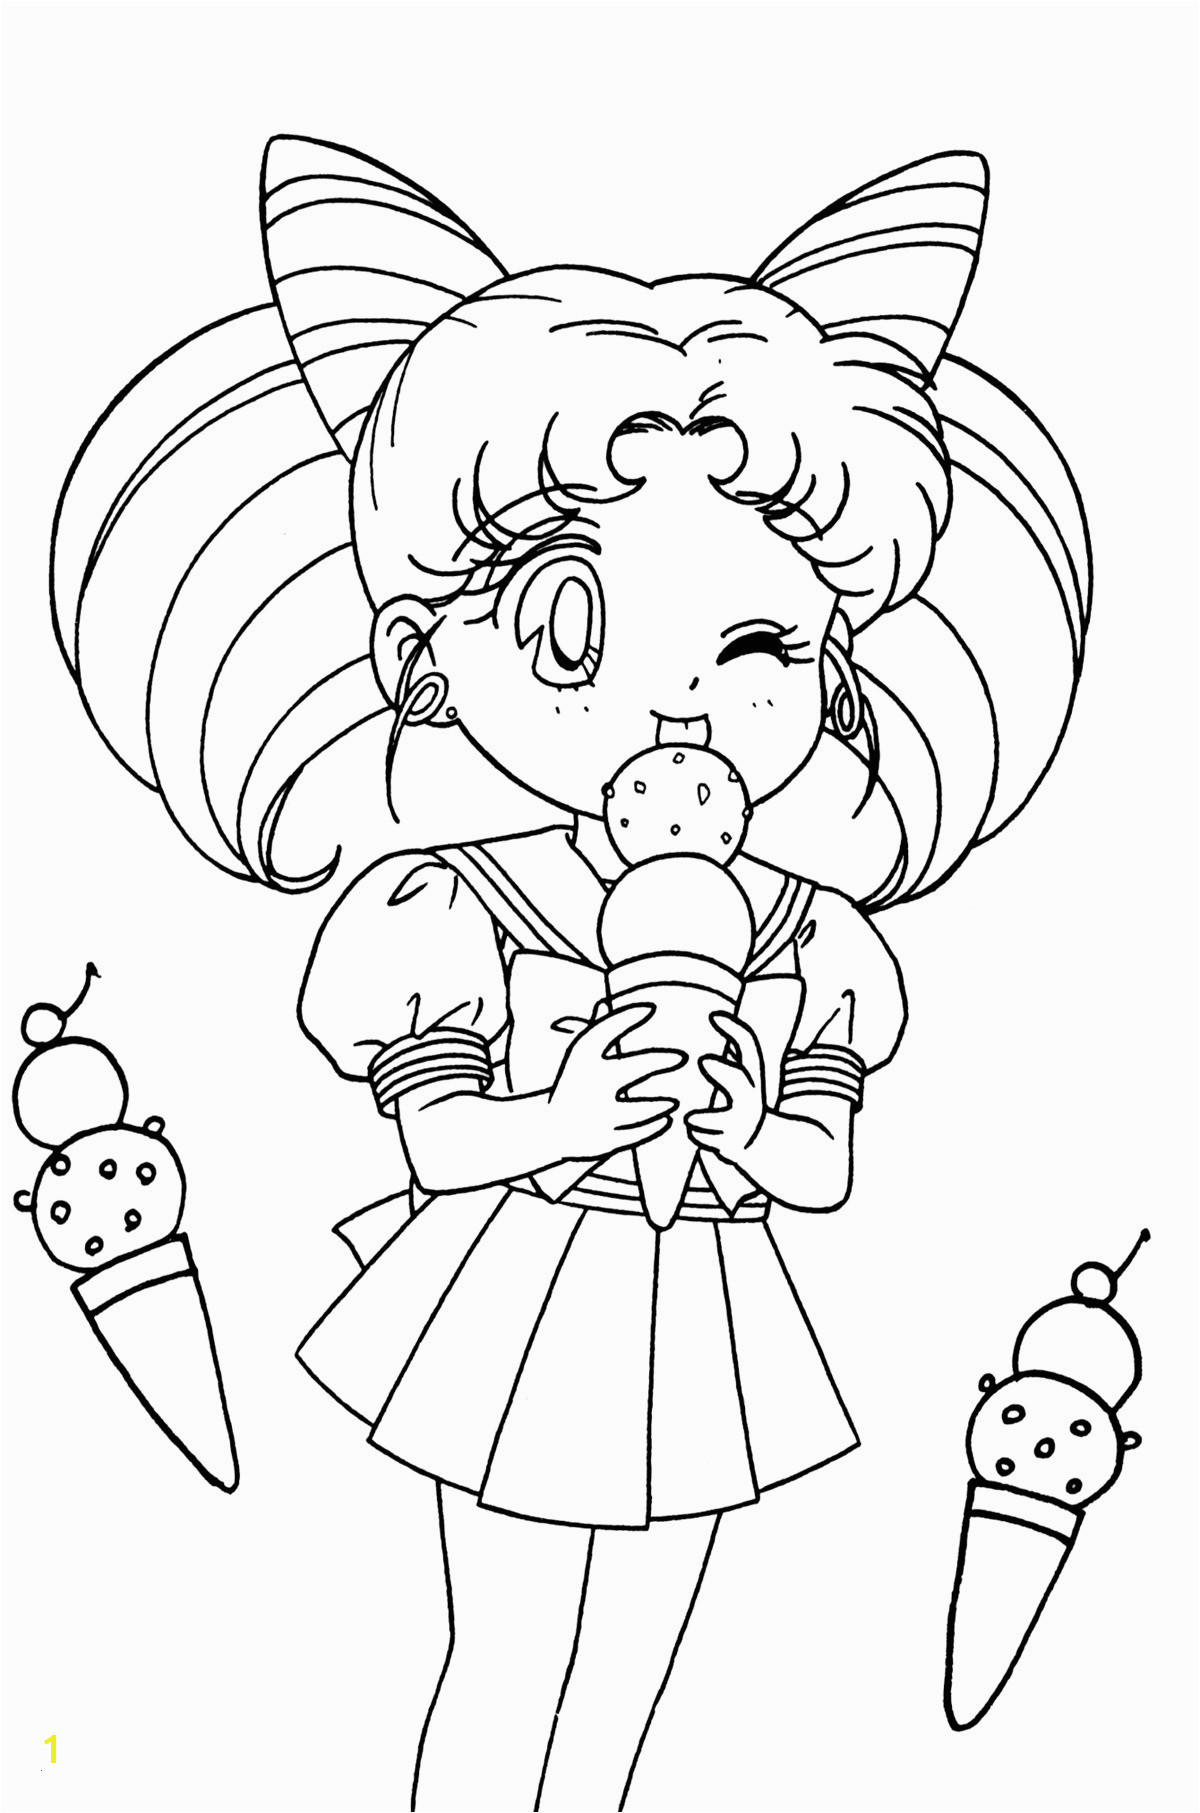 Sailor Mini Moon Coloring Pages Unique Sailor Moon Coloring Pages Letramac